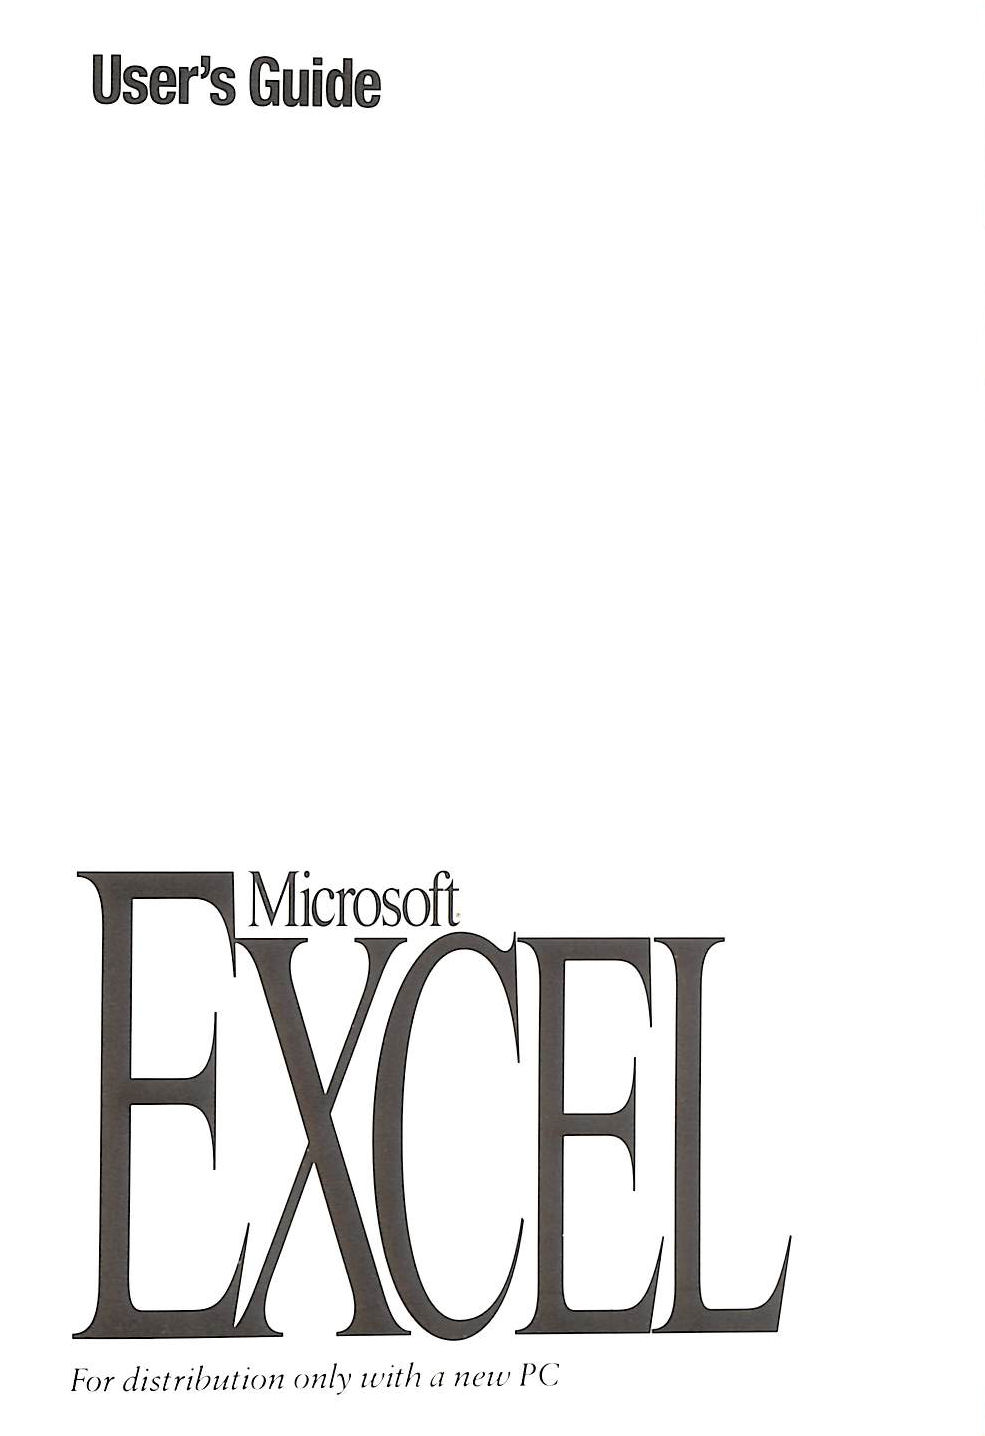 Image for Microsoft Excel: User's Guide Version 5.0